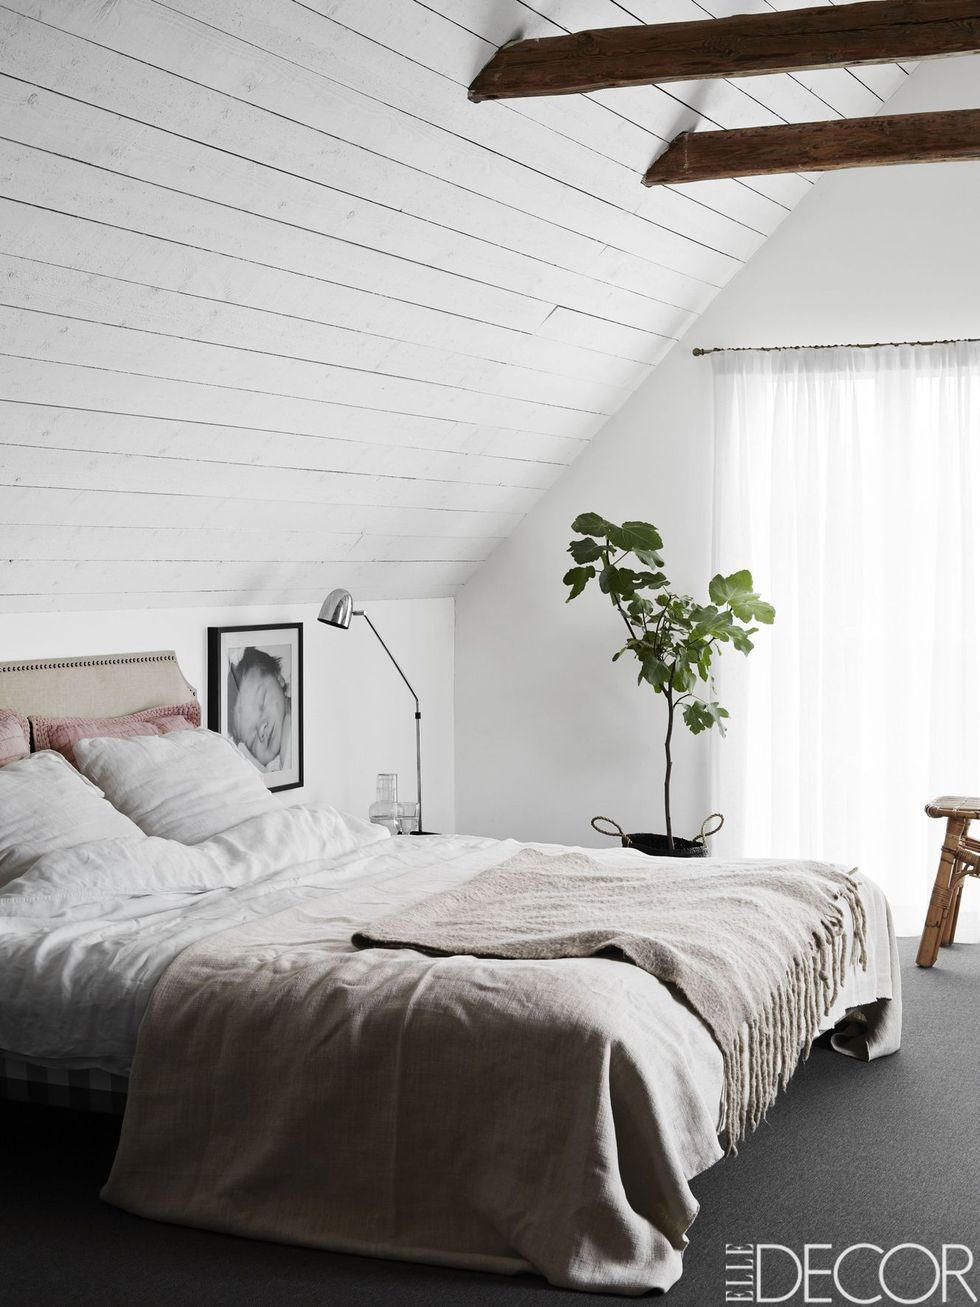 bedroom decorate tips vehnet imwp co u2022 rh vehnet imwp co